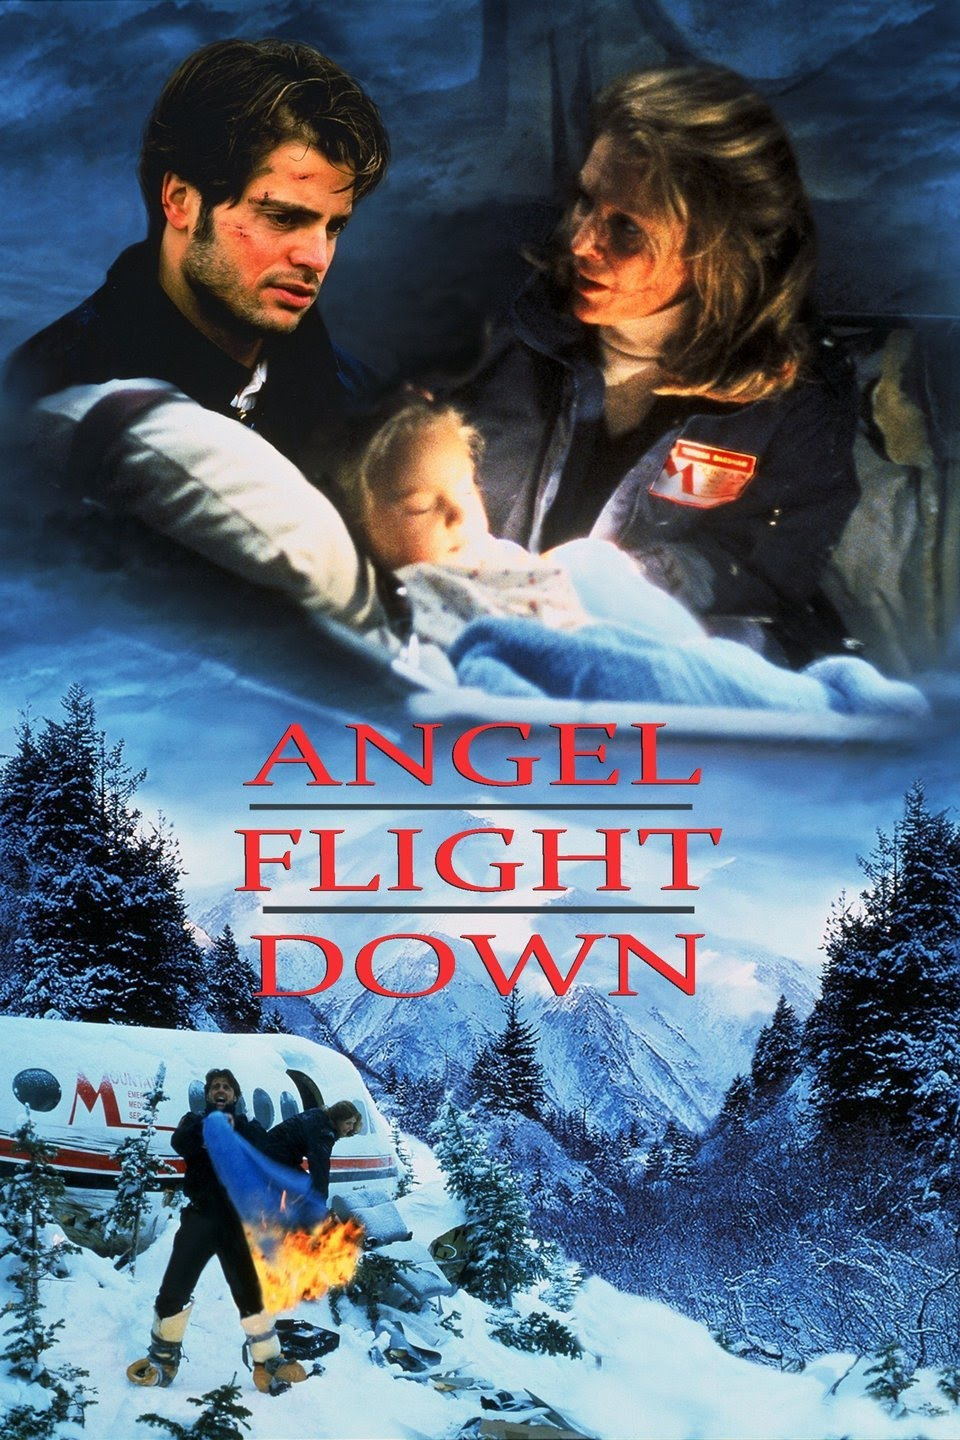 Angel Flight Down Tv Movie 1996 Imdb